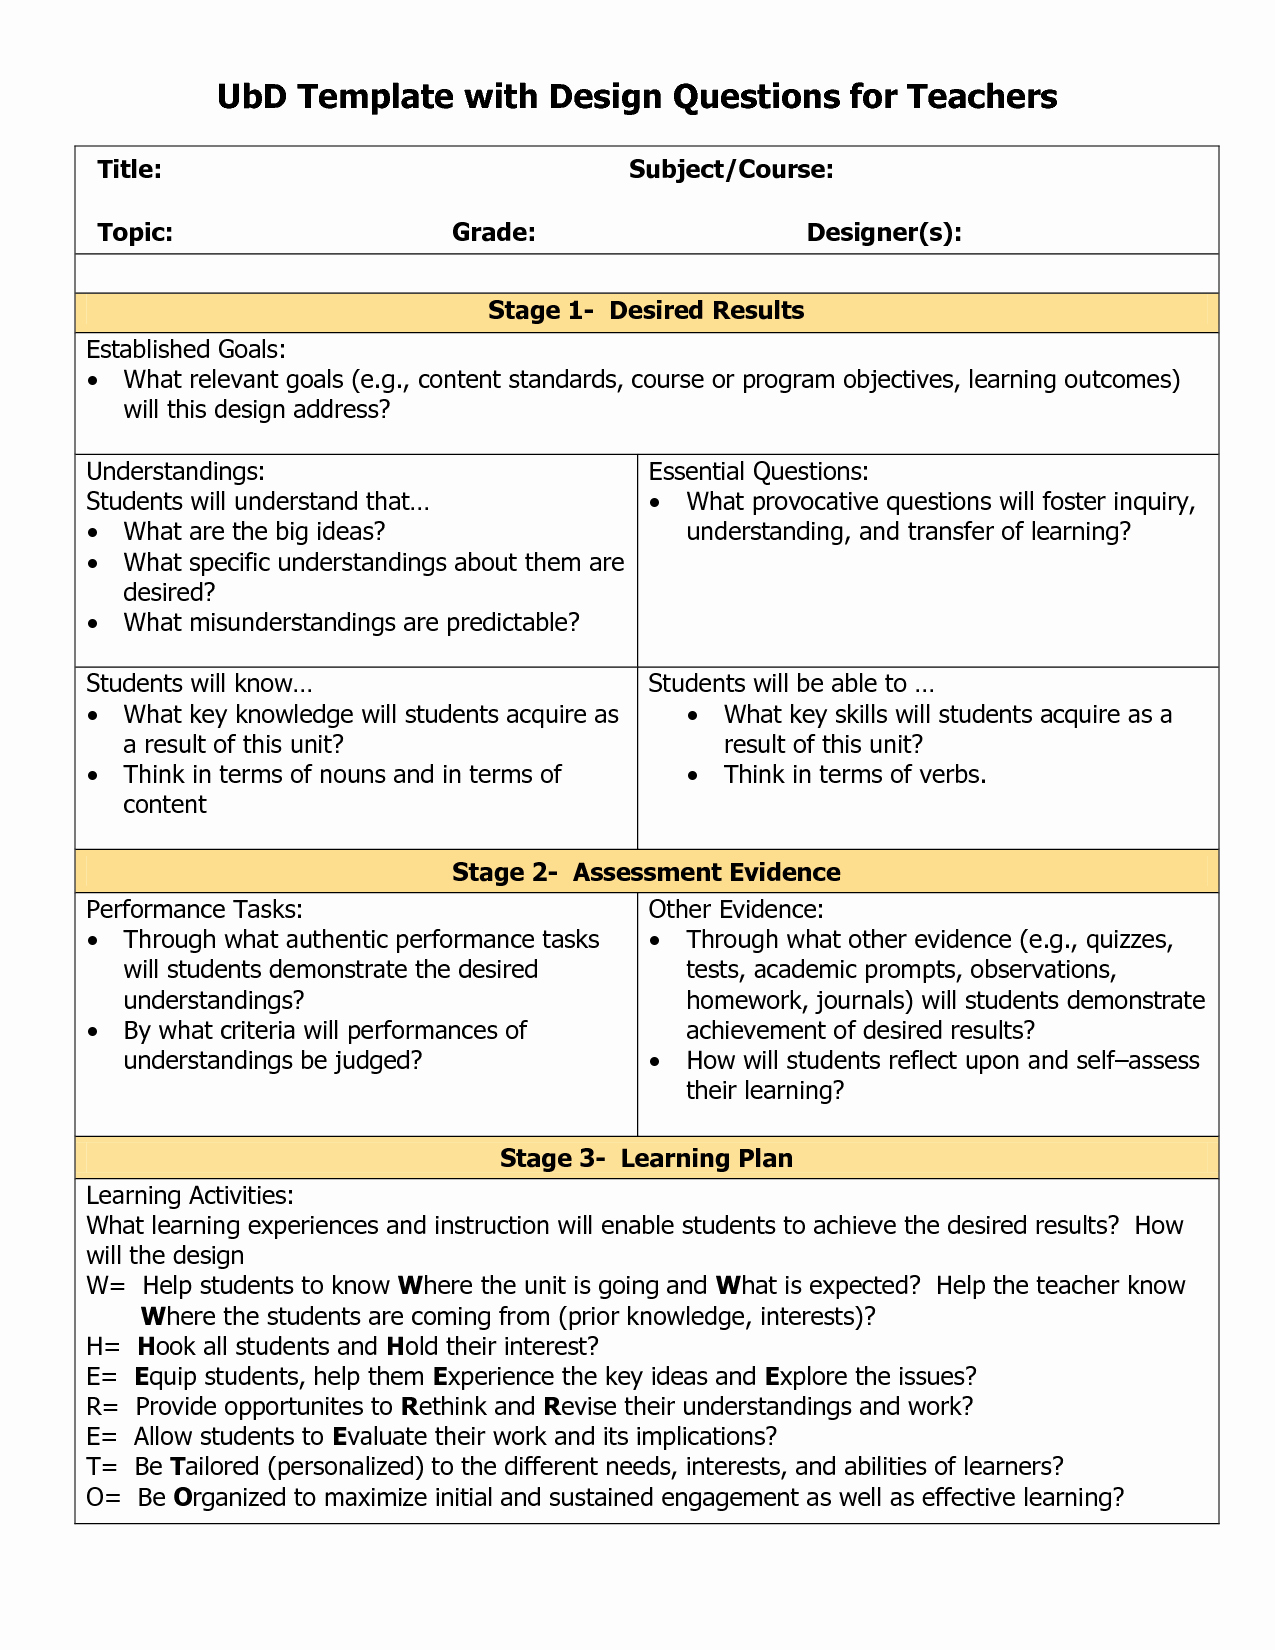 Marzano Lesson Plan Template Doc Inspirational Blank Ubd Template